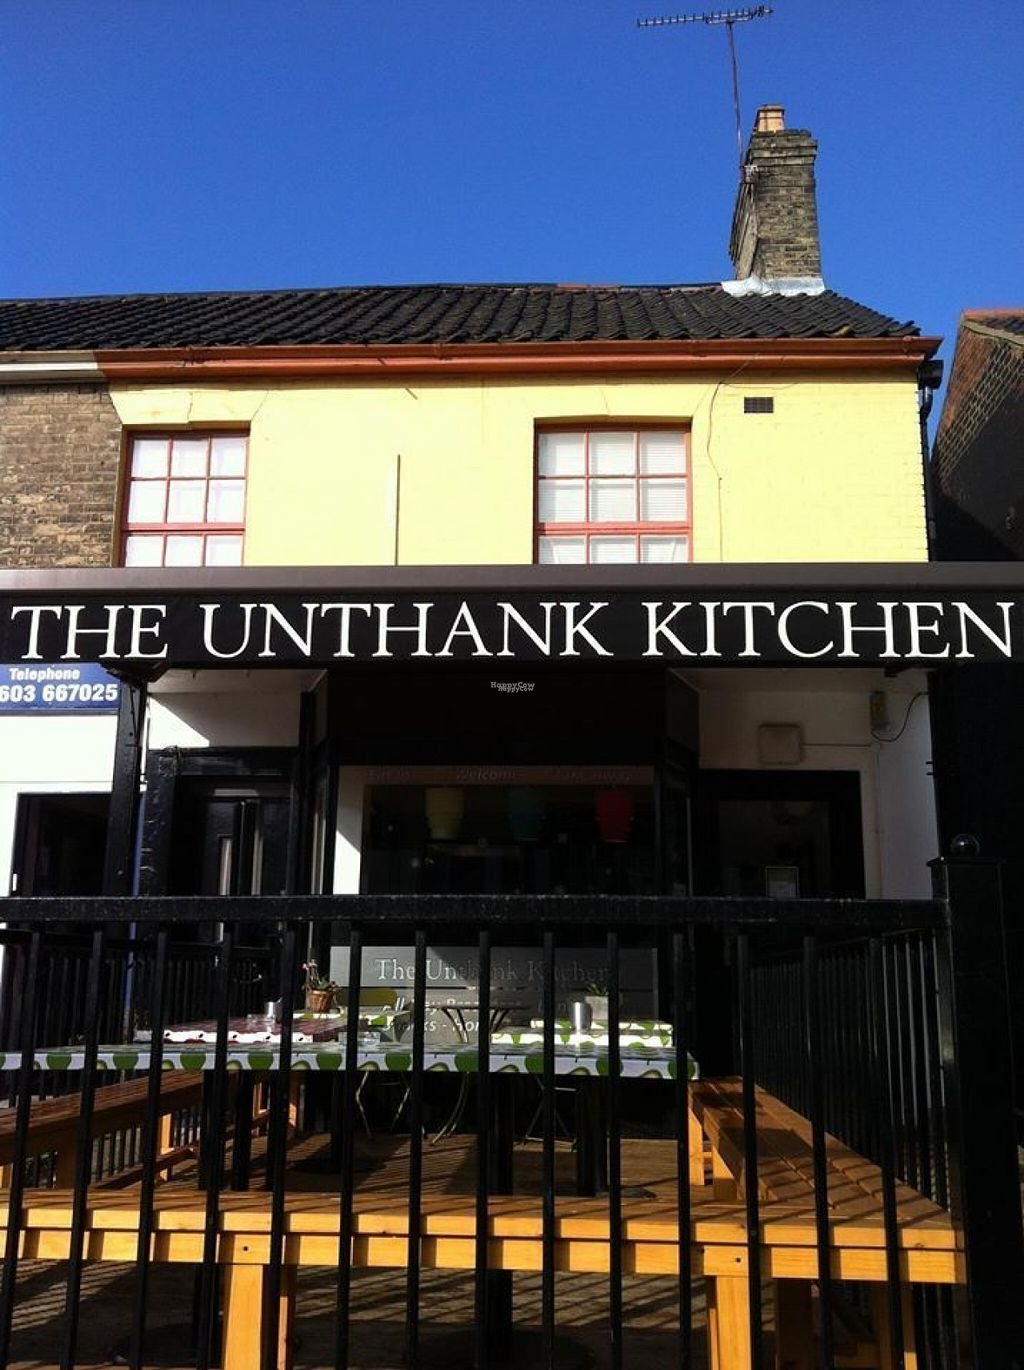 """Photo of The Unthank Kitchen  by <a href=""""/members/profile/Meaks"""">Meaks</a> <br/>The Unthank Kitchen <br/> August 4, 2016  - <a href='/contact/abuse/image/75837/165361'>Report</a>"""